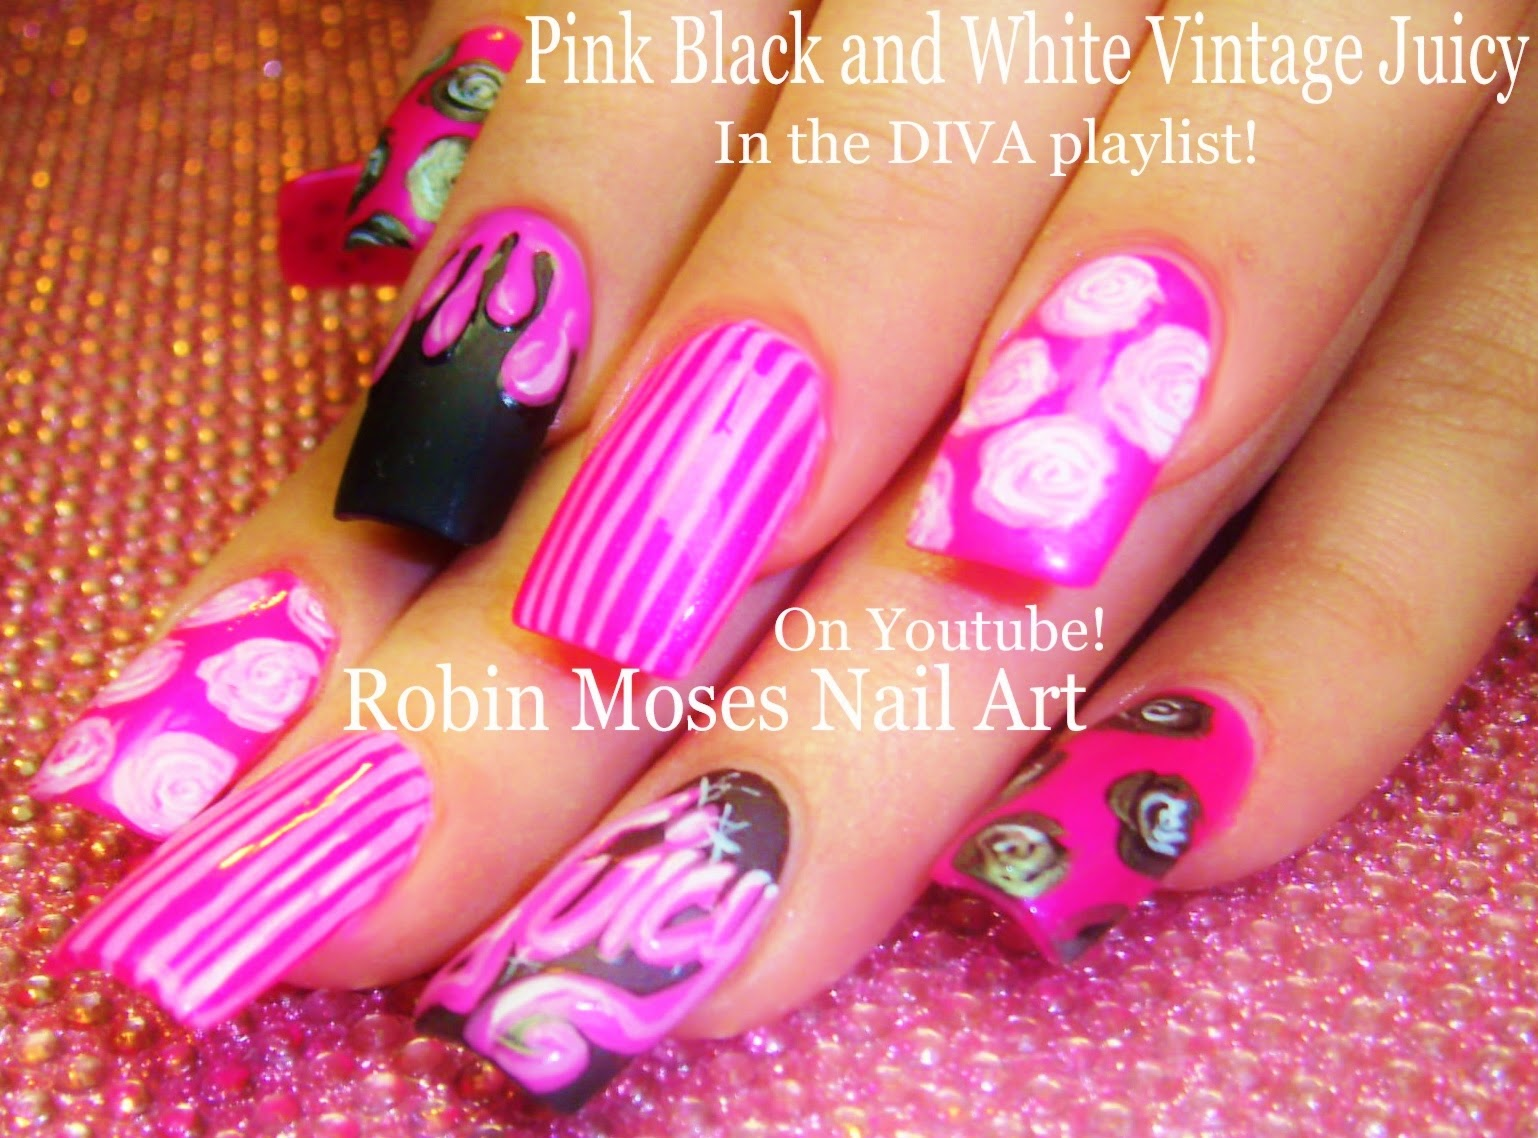 Nail Art by Robin Moses: Shabby Chic Antique meets Diva Prints in ...